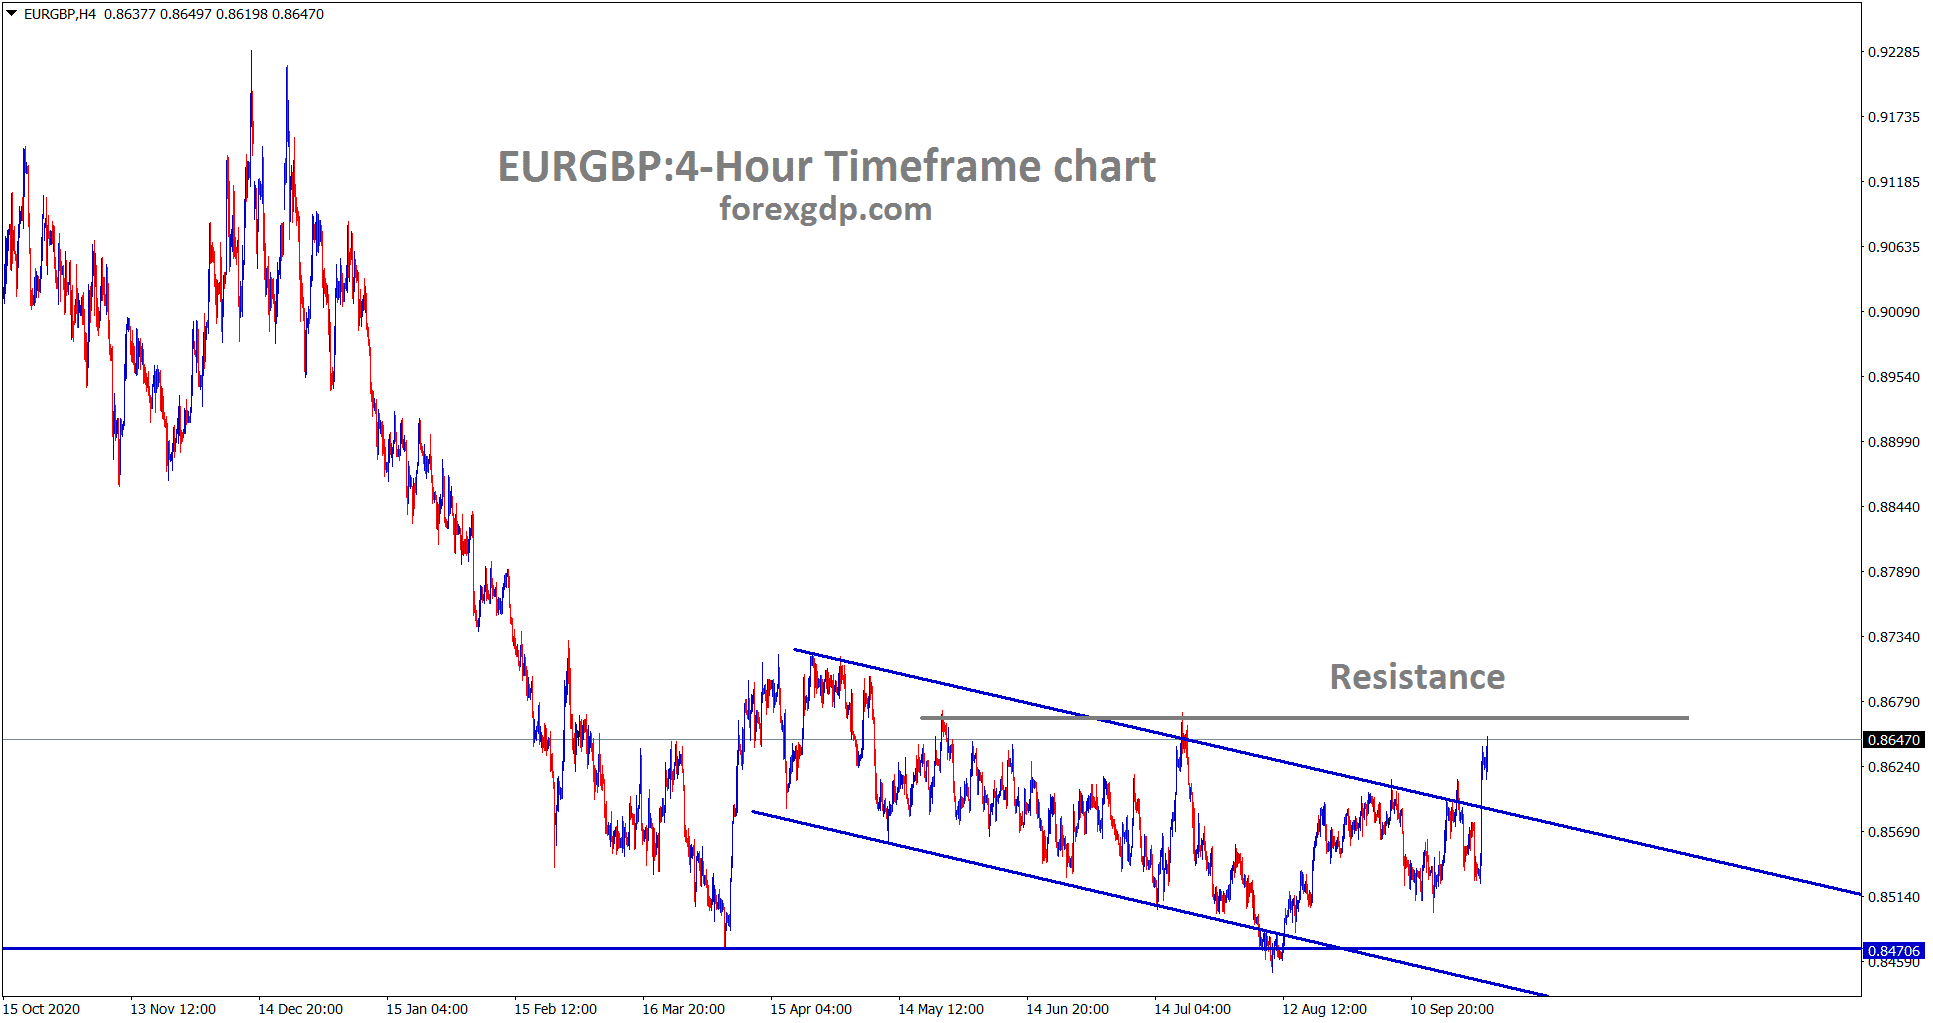 EURGBP is has broken the descending channel range and standing now at the horizontal resistance area